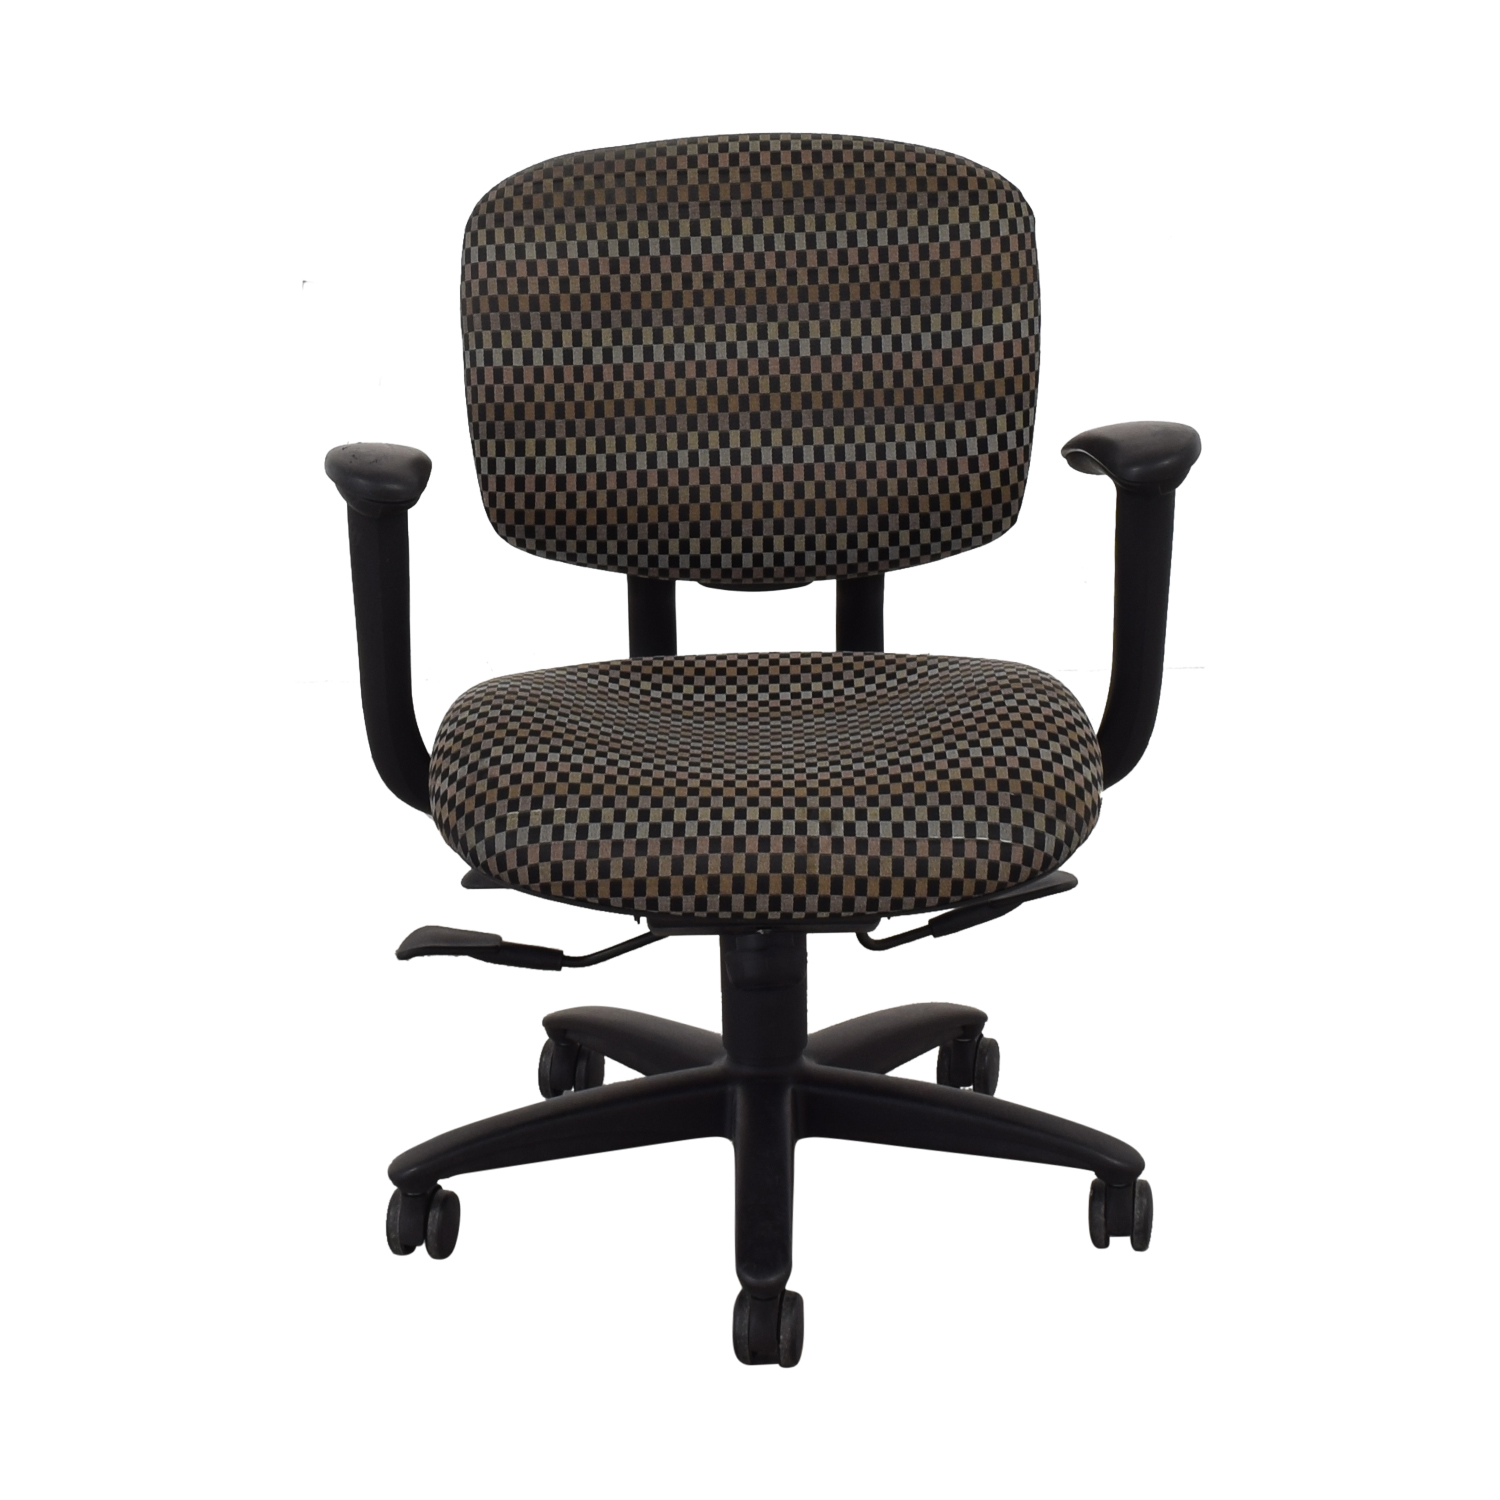 Haworth Haworth Improv Office Desk Chair used